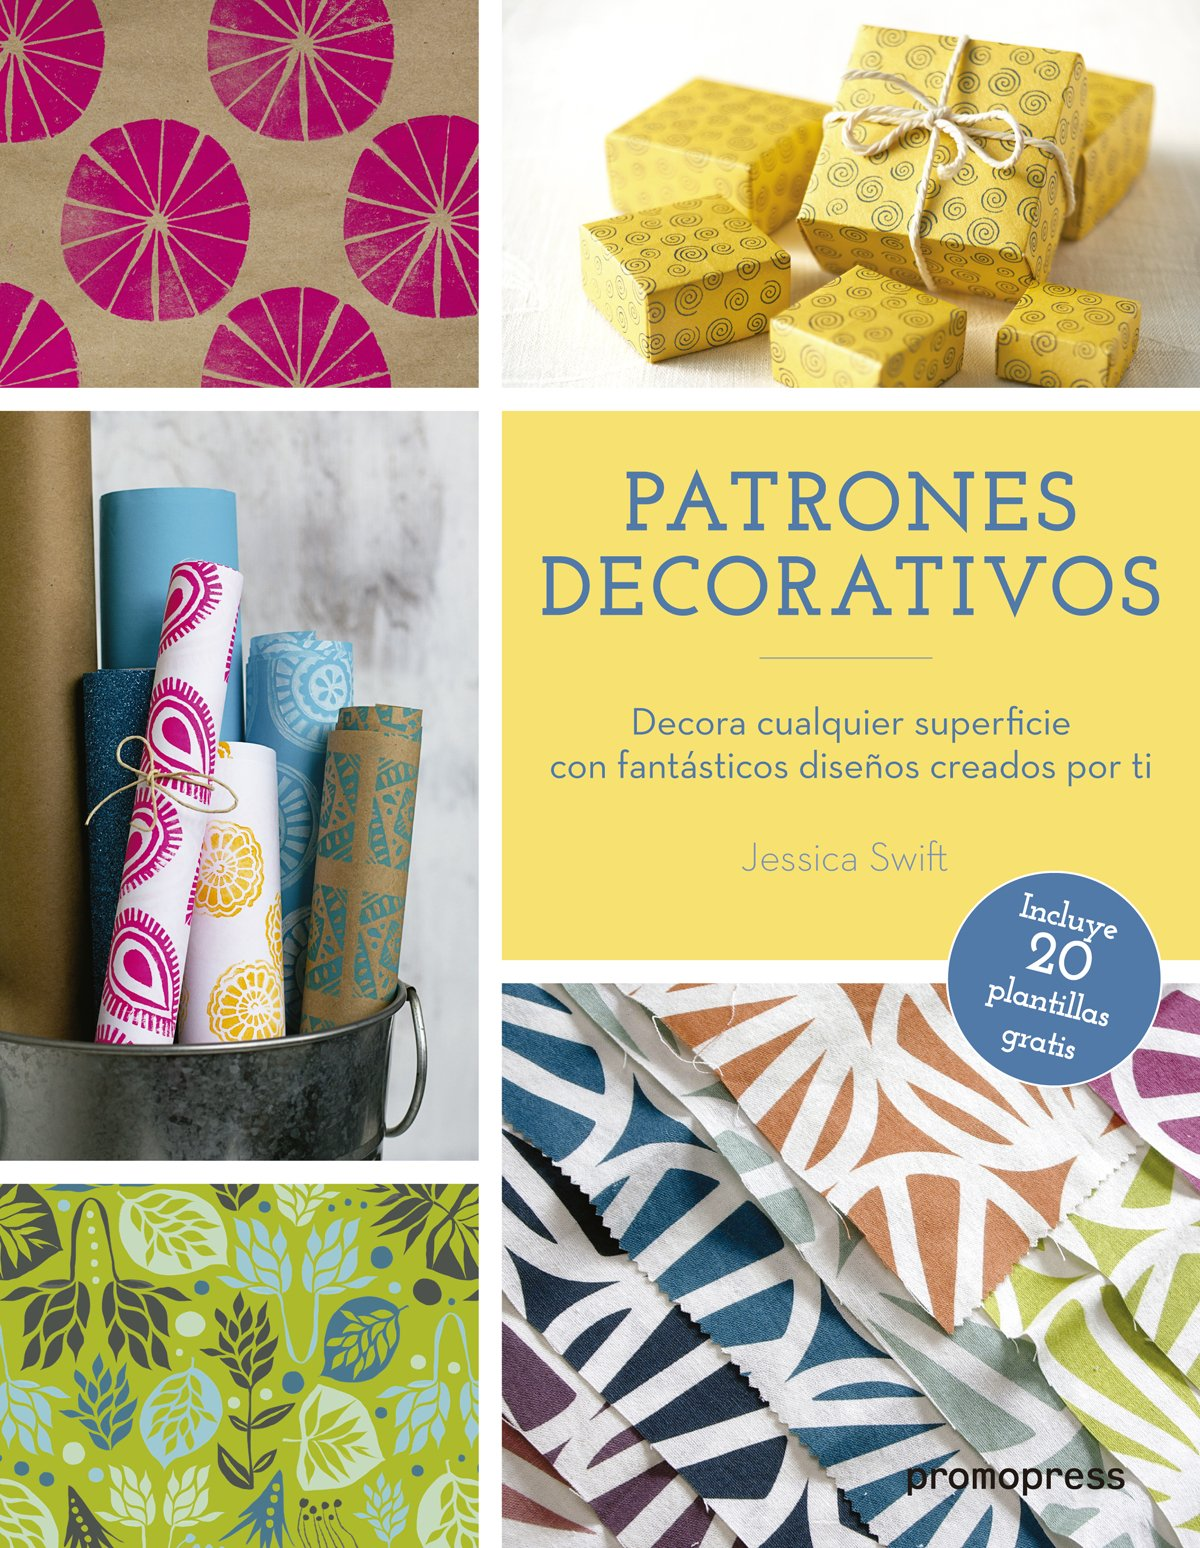 Patrones Decorativos